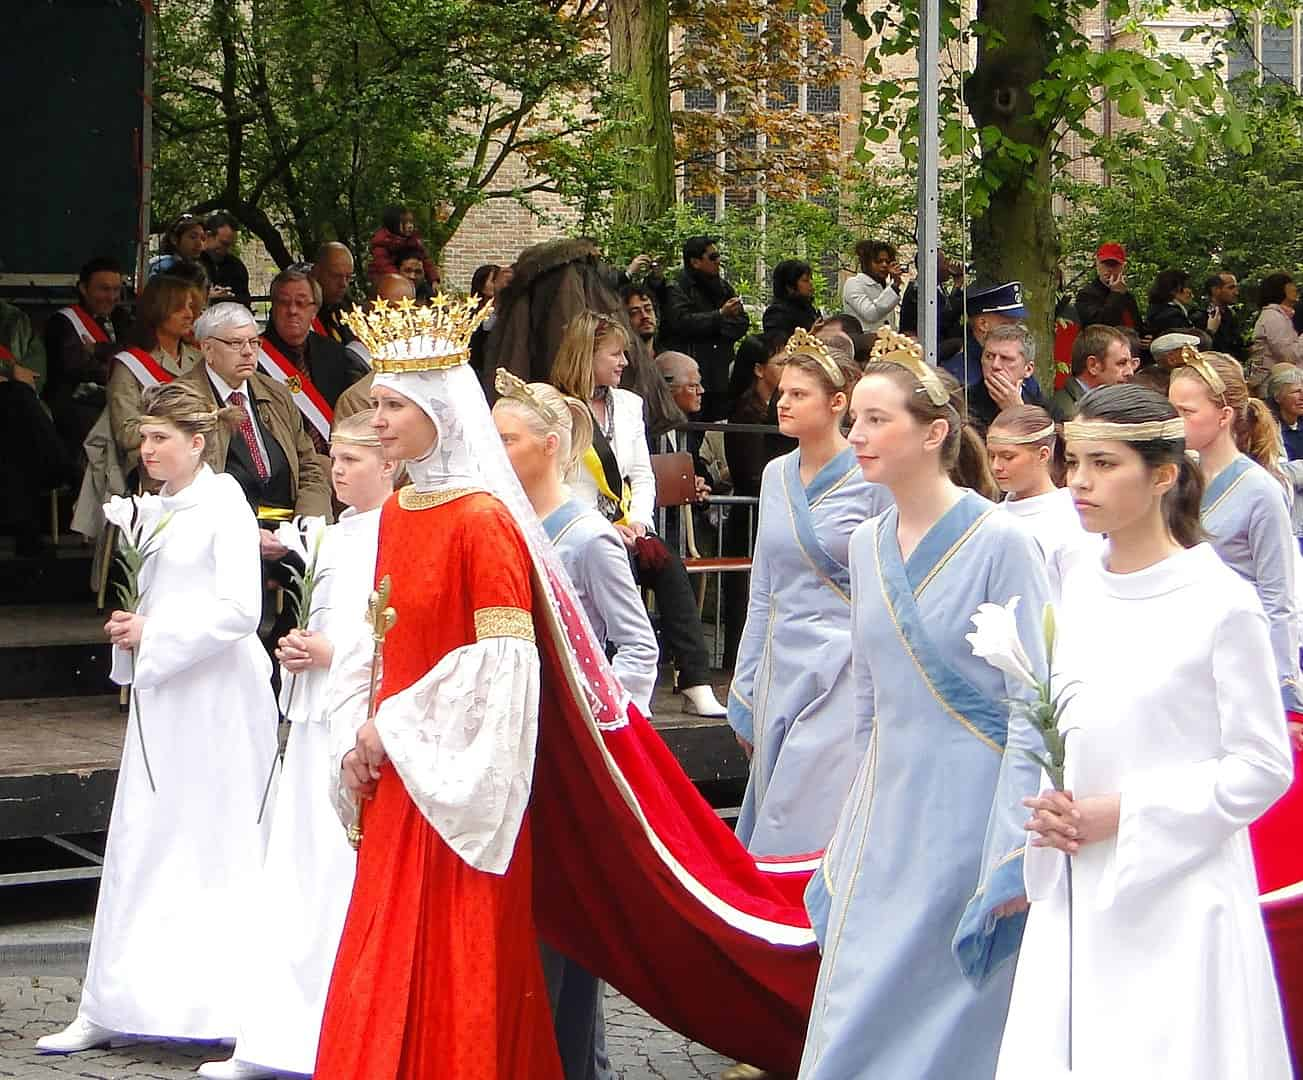 Belgium Facts, Procession of the Holy Blood